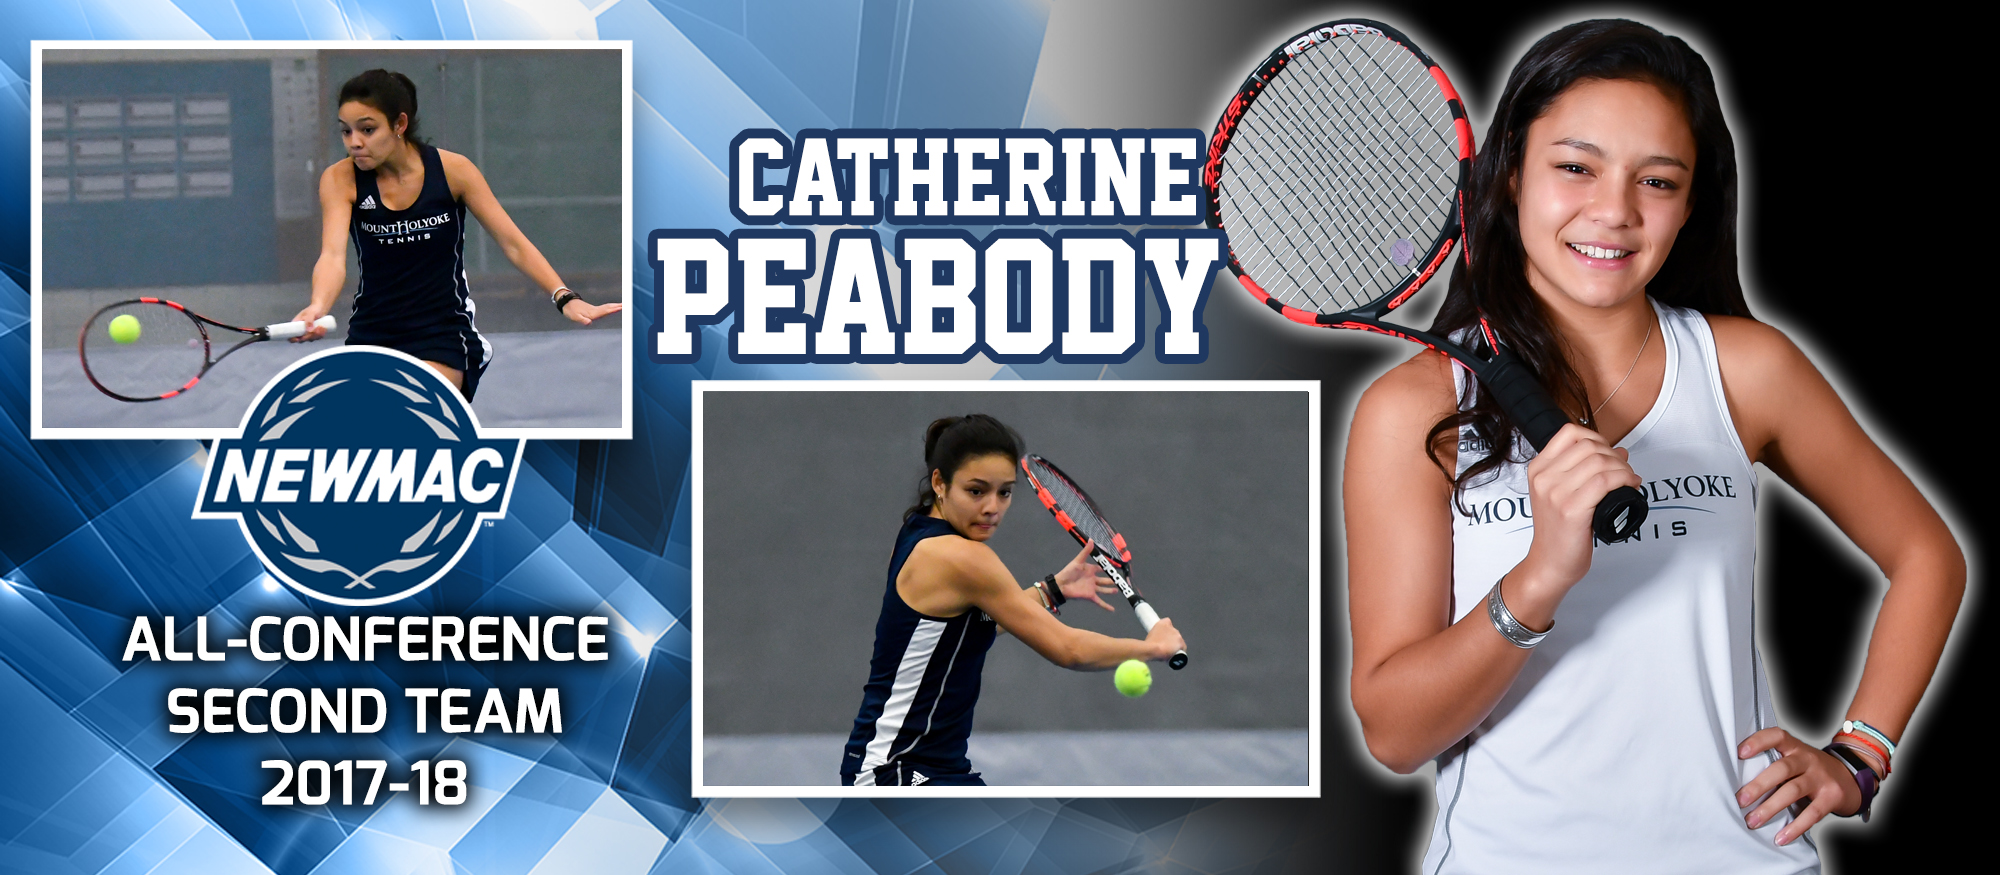 Graphic showing a variety of photos of Lyons tennis player, Catherine Peabody, who was named to the 2017-18 NEWMAC All-Conference Second Team in #3 Singles.